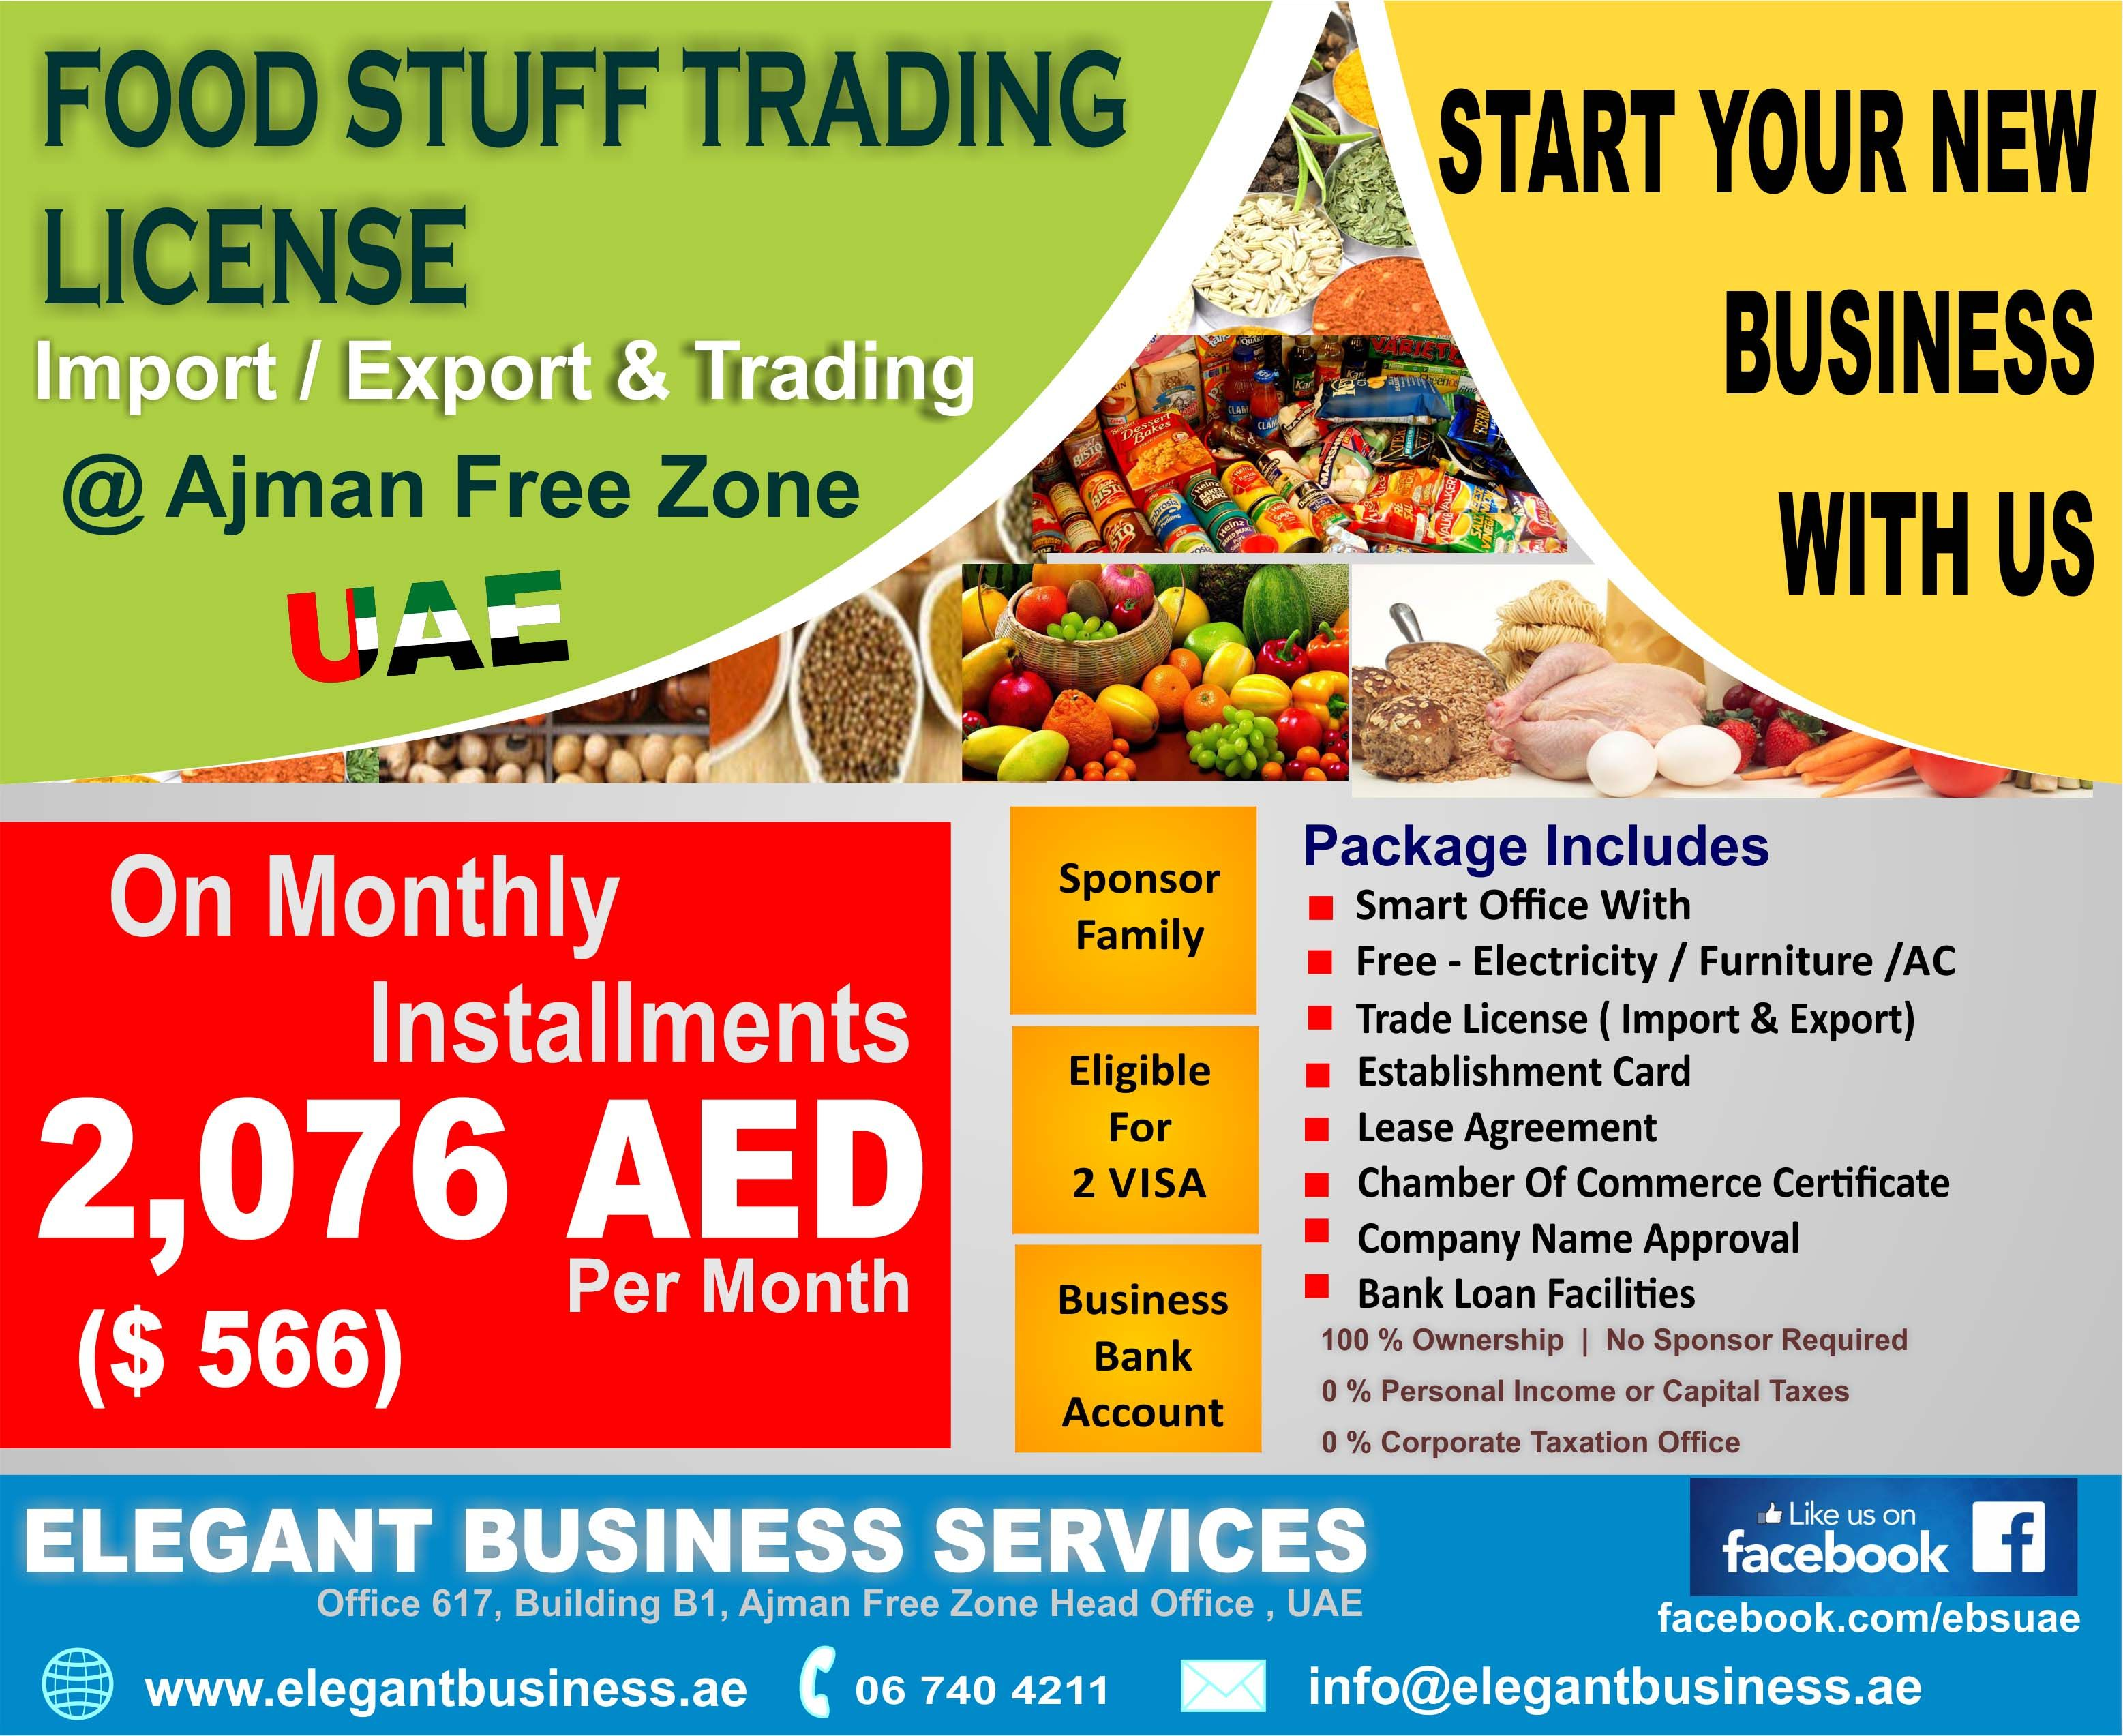 Food Stuff Trading License Ajman Free Zone Uae Elegant